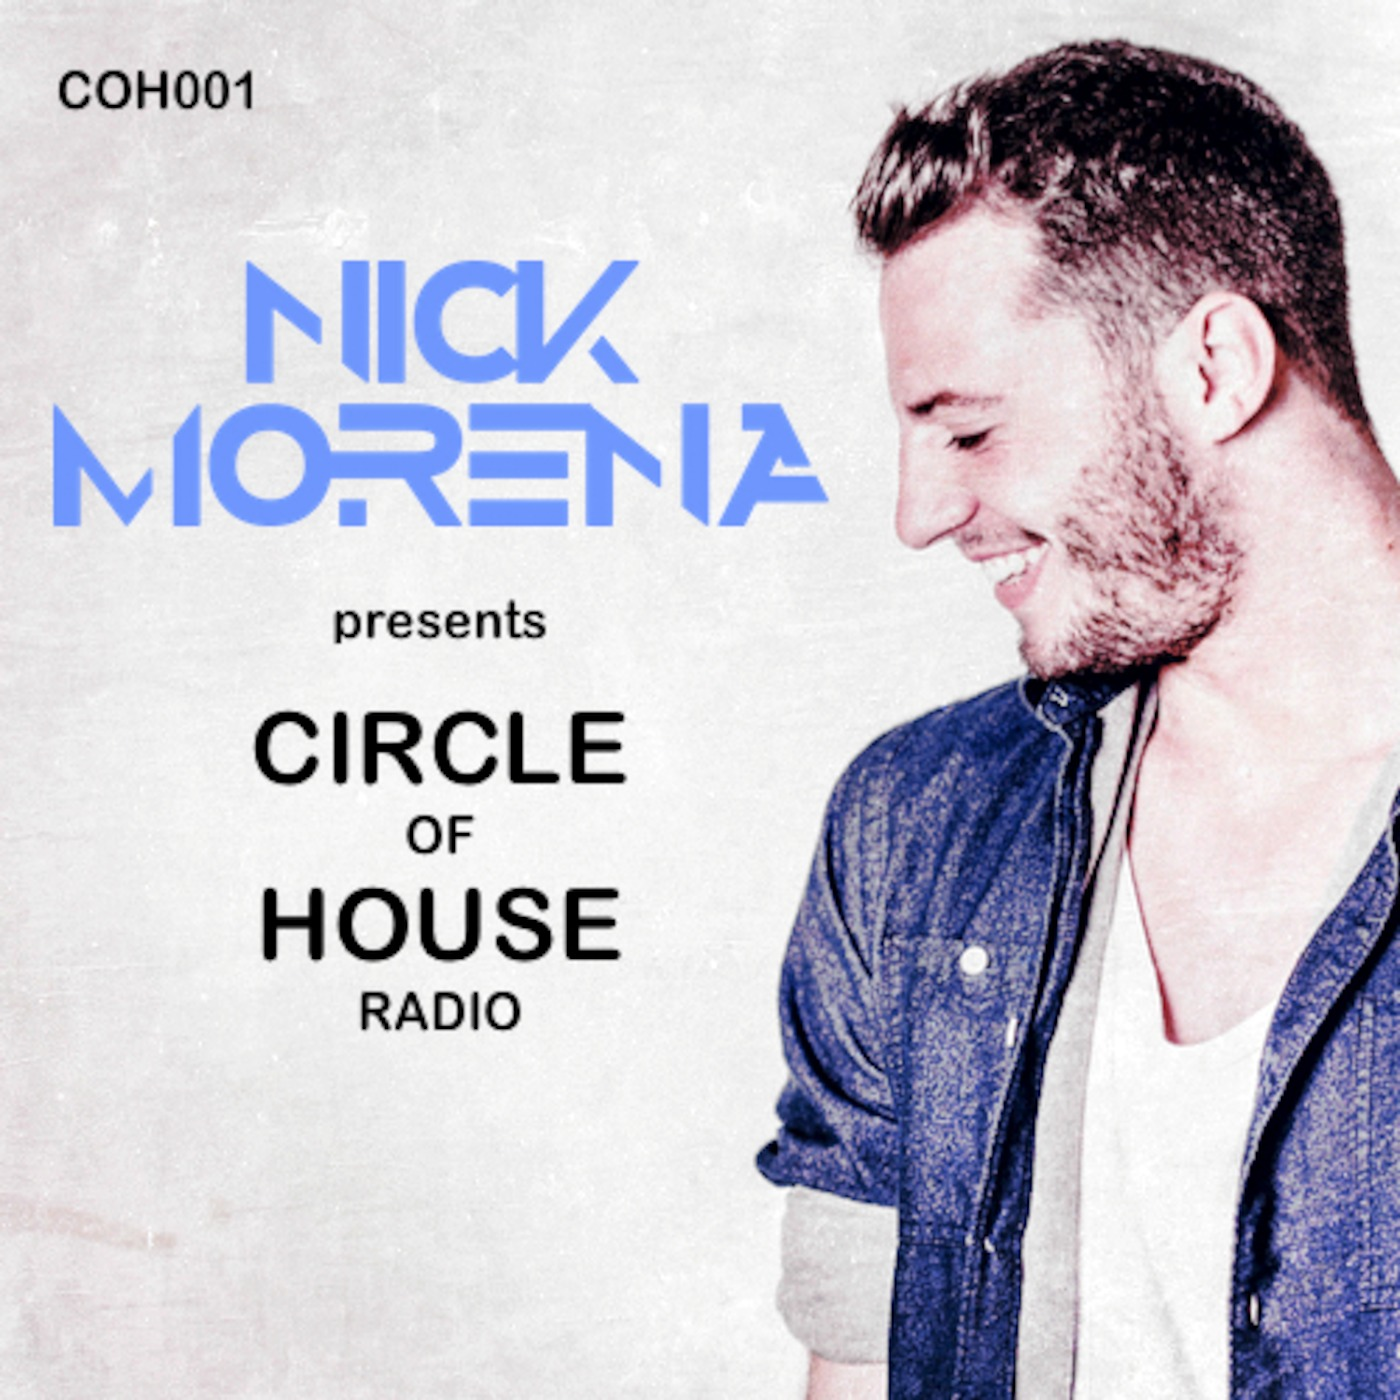 Nick Morena - Circle Of House Radio